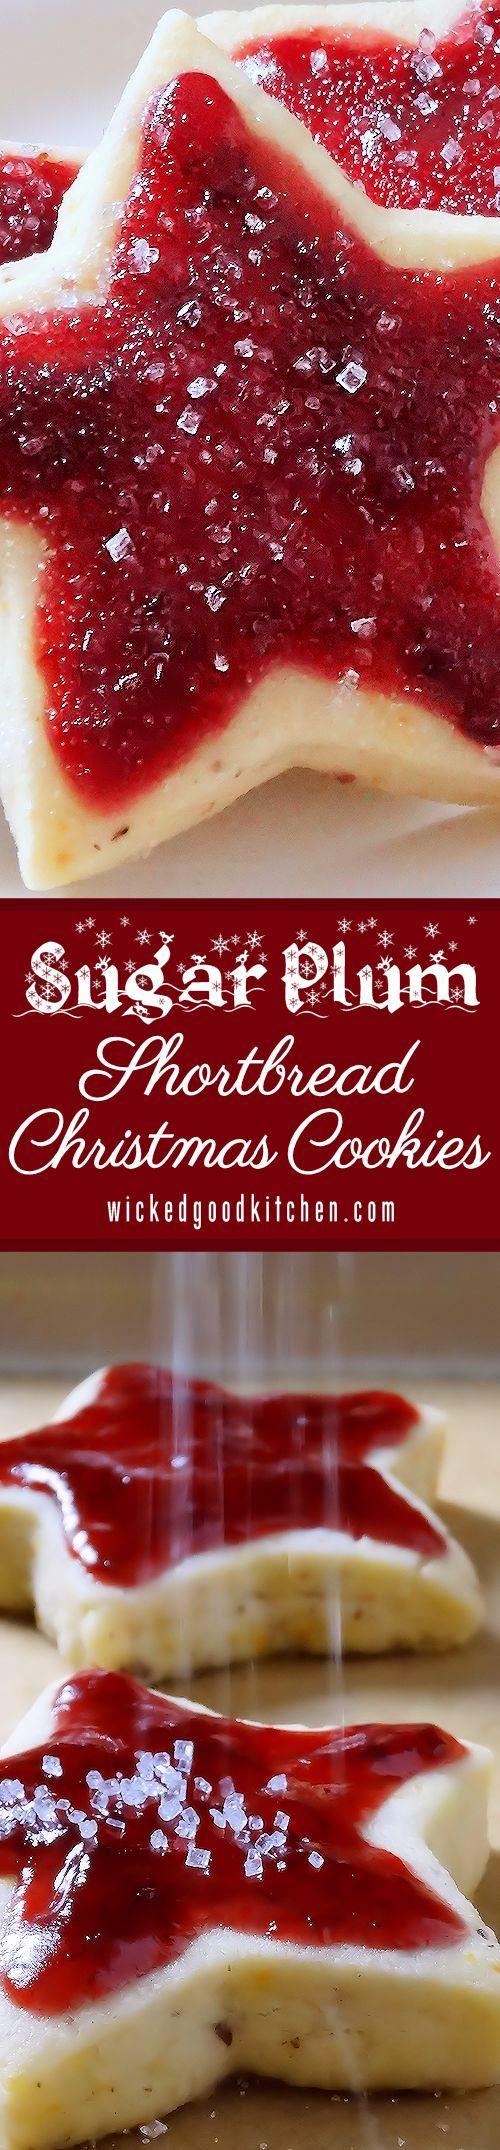 Sugar Plum Shortbread Christmas Cookies ~ Scrumptious old-fashioned buttery shortbread kissed with sunny orange zest, pecans and a whisper of spices topped with Sugar Plum Jam. They are like a jam-topped English scone turned into a shortbread cookie! Everyone will LOVE them! Includes gluten free option. | sugarplum cookie recipe